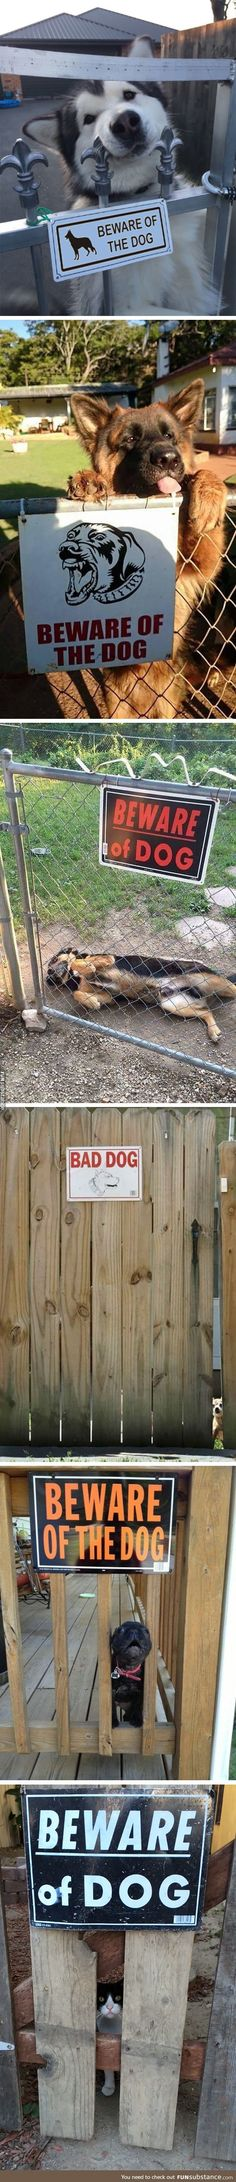 Beware of the dog,jajaja too cute to be true - - Lustig - dog funny dog funny funny aesthetic funny hilarious funny sleeping Animals And Pets, Funny Animals, Cute Animals, Dog Memes, Funny Memes, Cute Puppies, Cute Dogs, Funny Cute, Hilarious